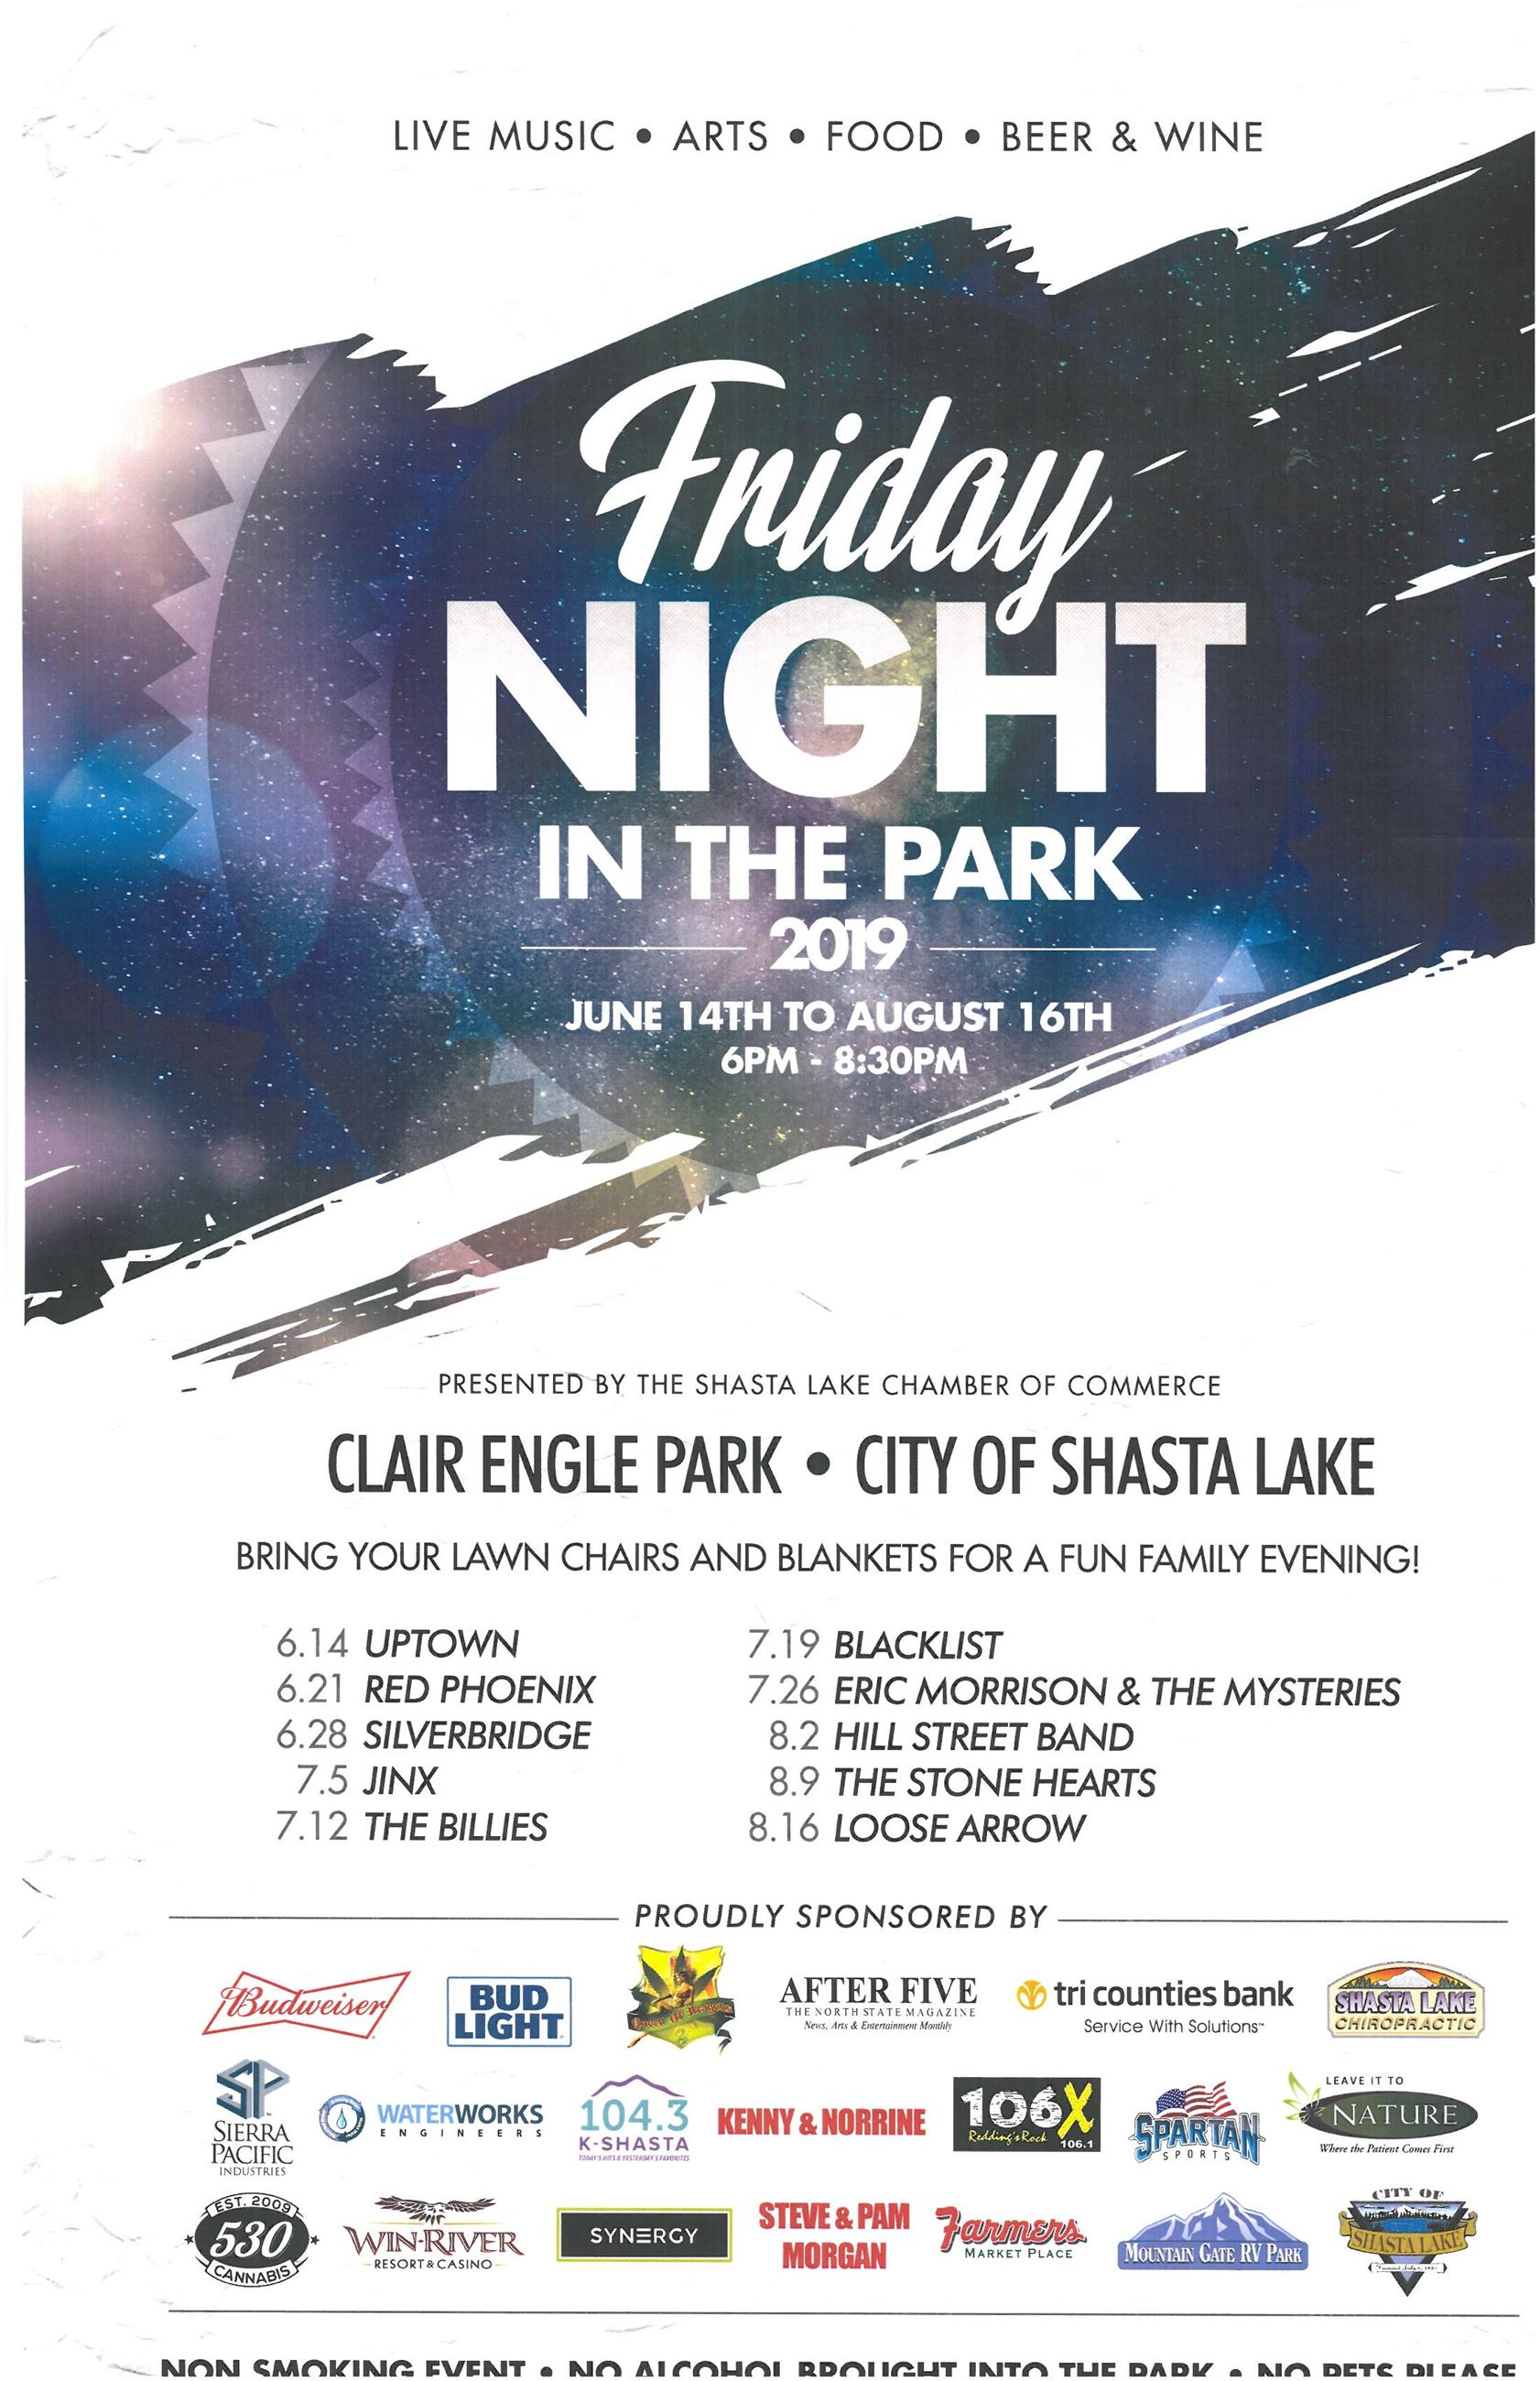 Friday Night in the Park 2019 a